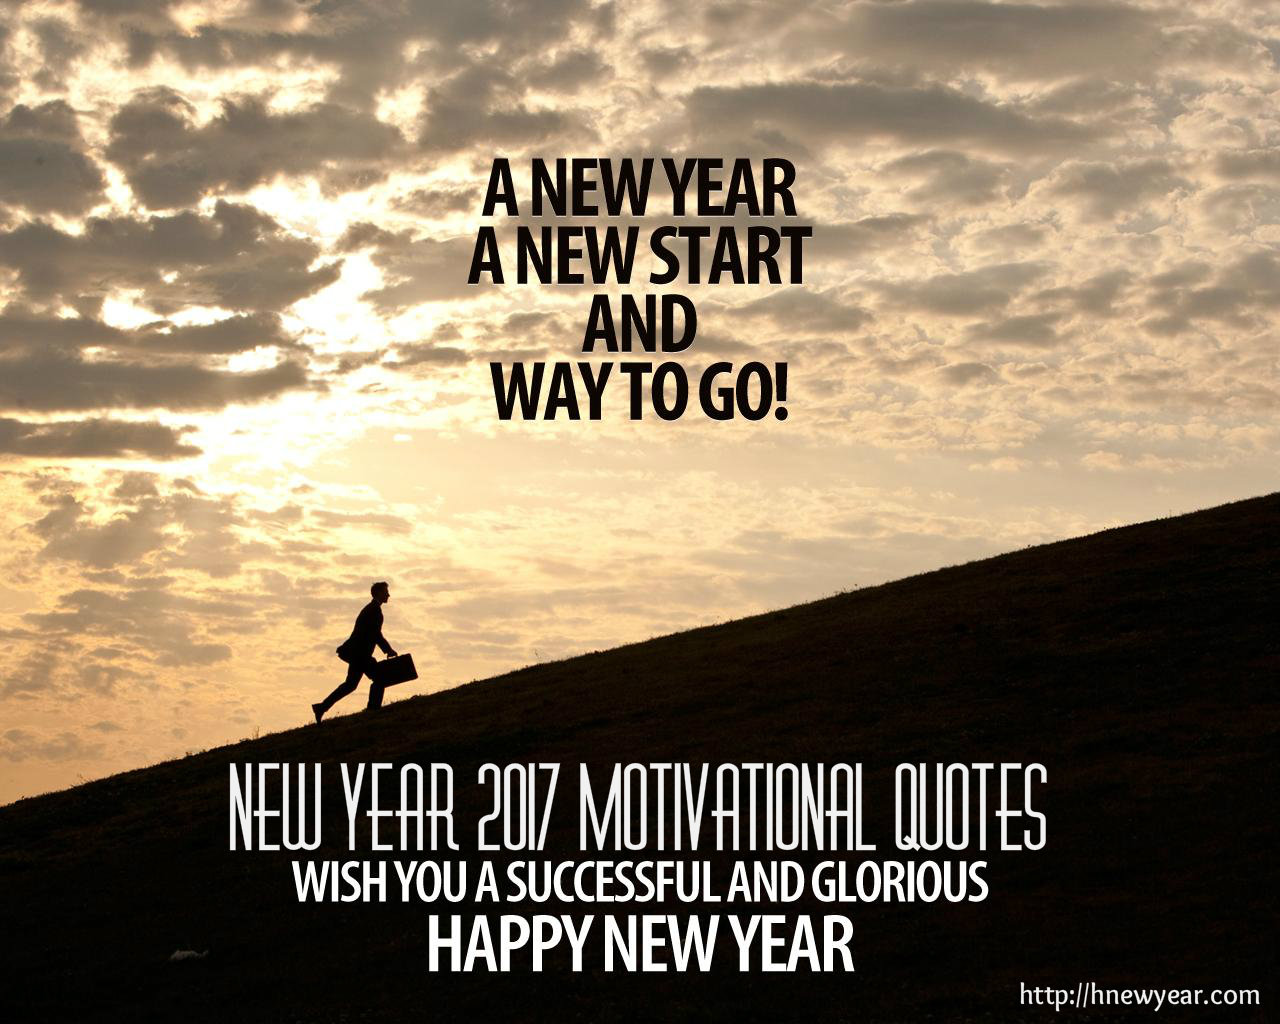 new year 2019 motivational quotes wishes and inspirational sayings